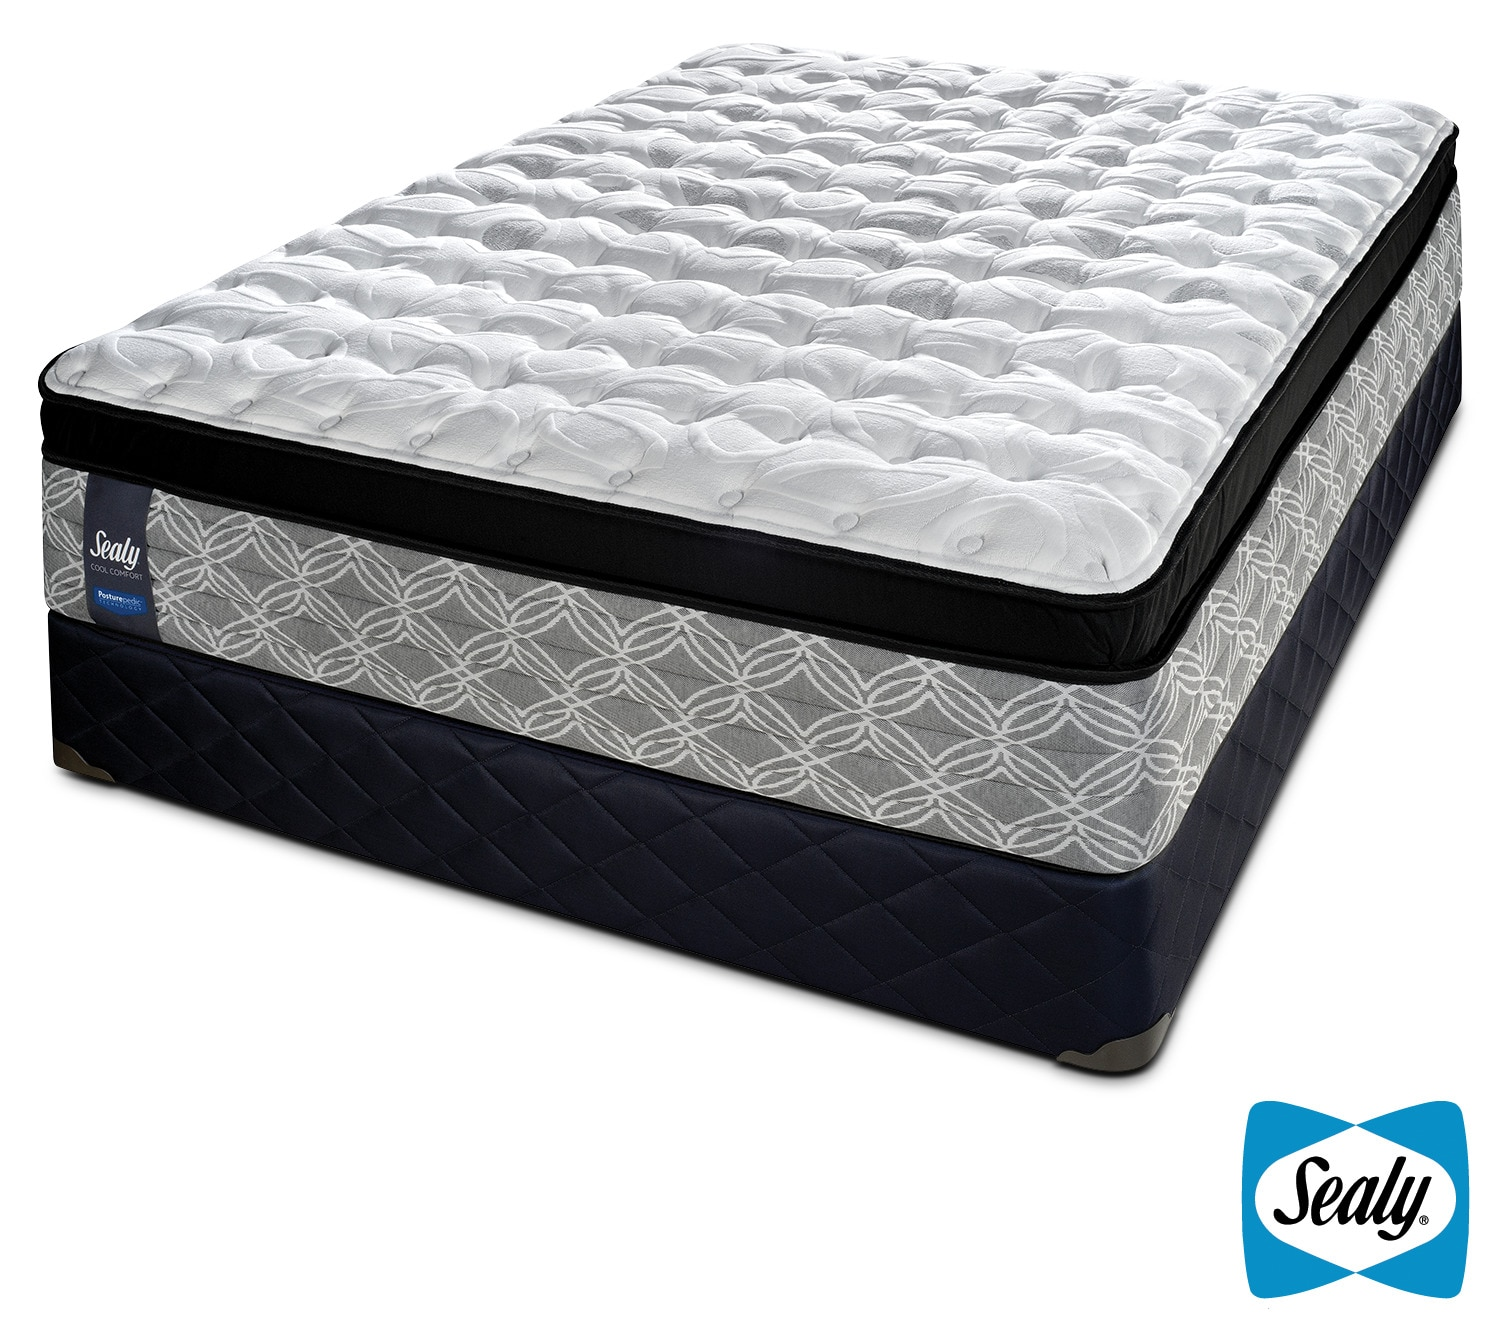 Queen mattress set twin mattress and foundation sets legend mattress hhgregg mattress Cheapest queen mattress